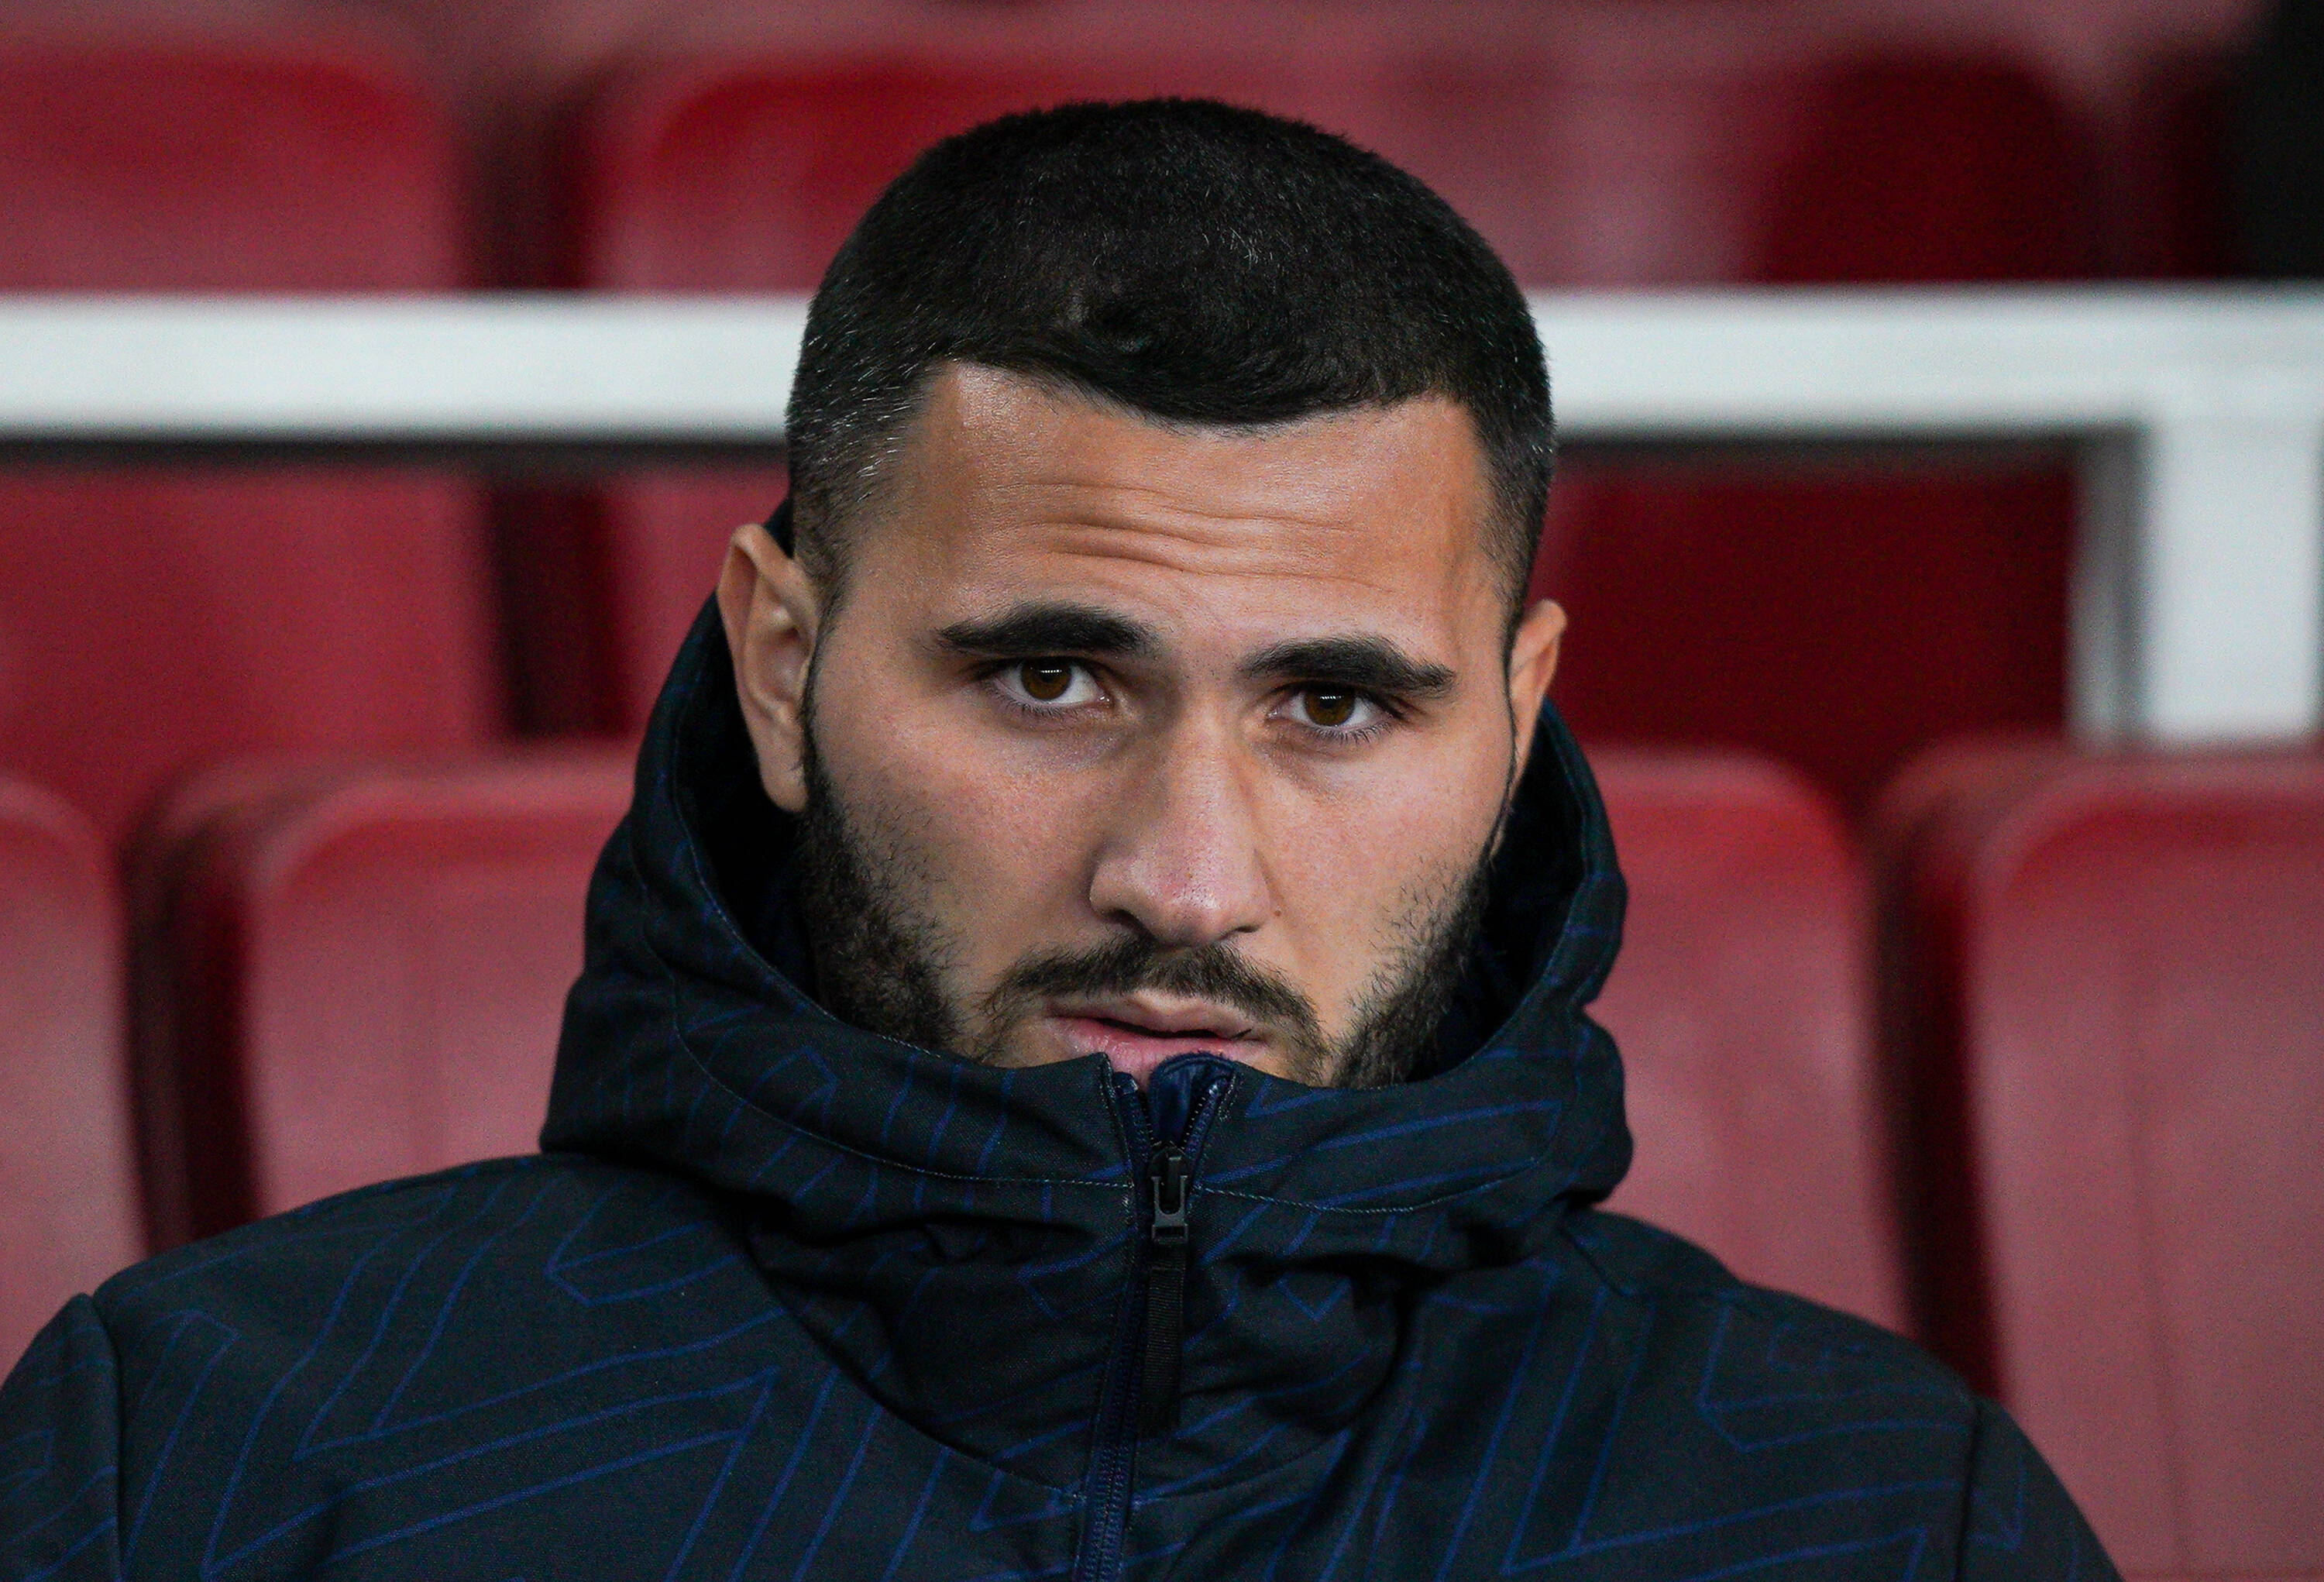 FC Schalke are interested in re-signing Sead Kolasinac - Time to depart.